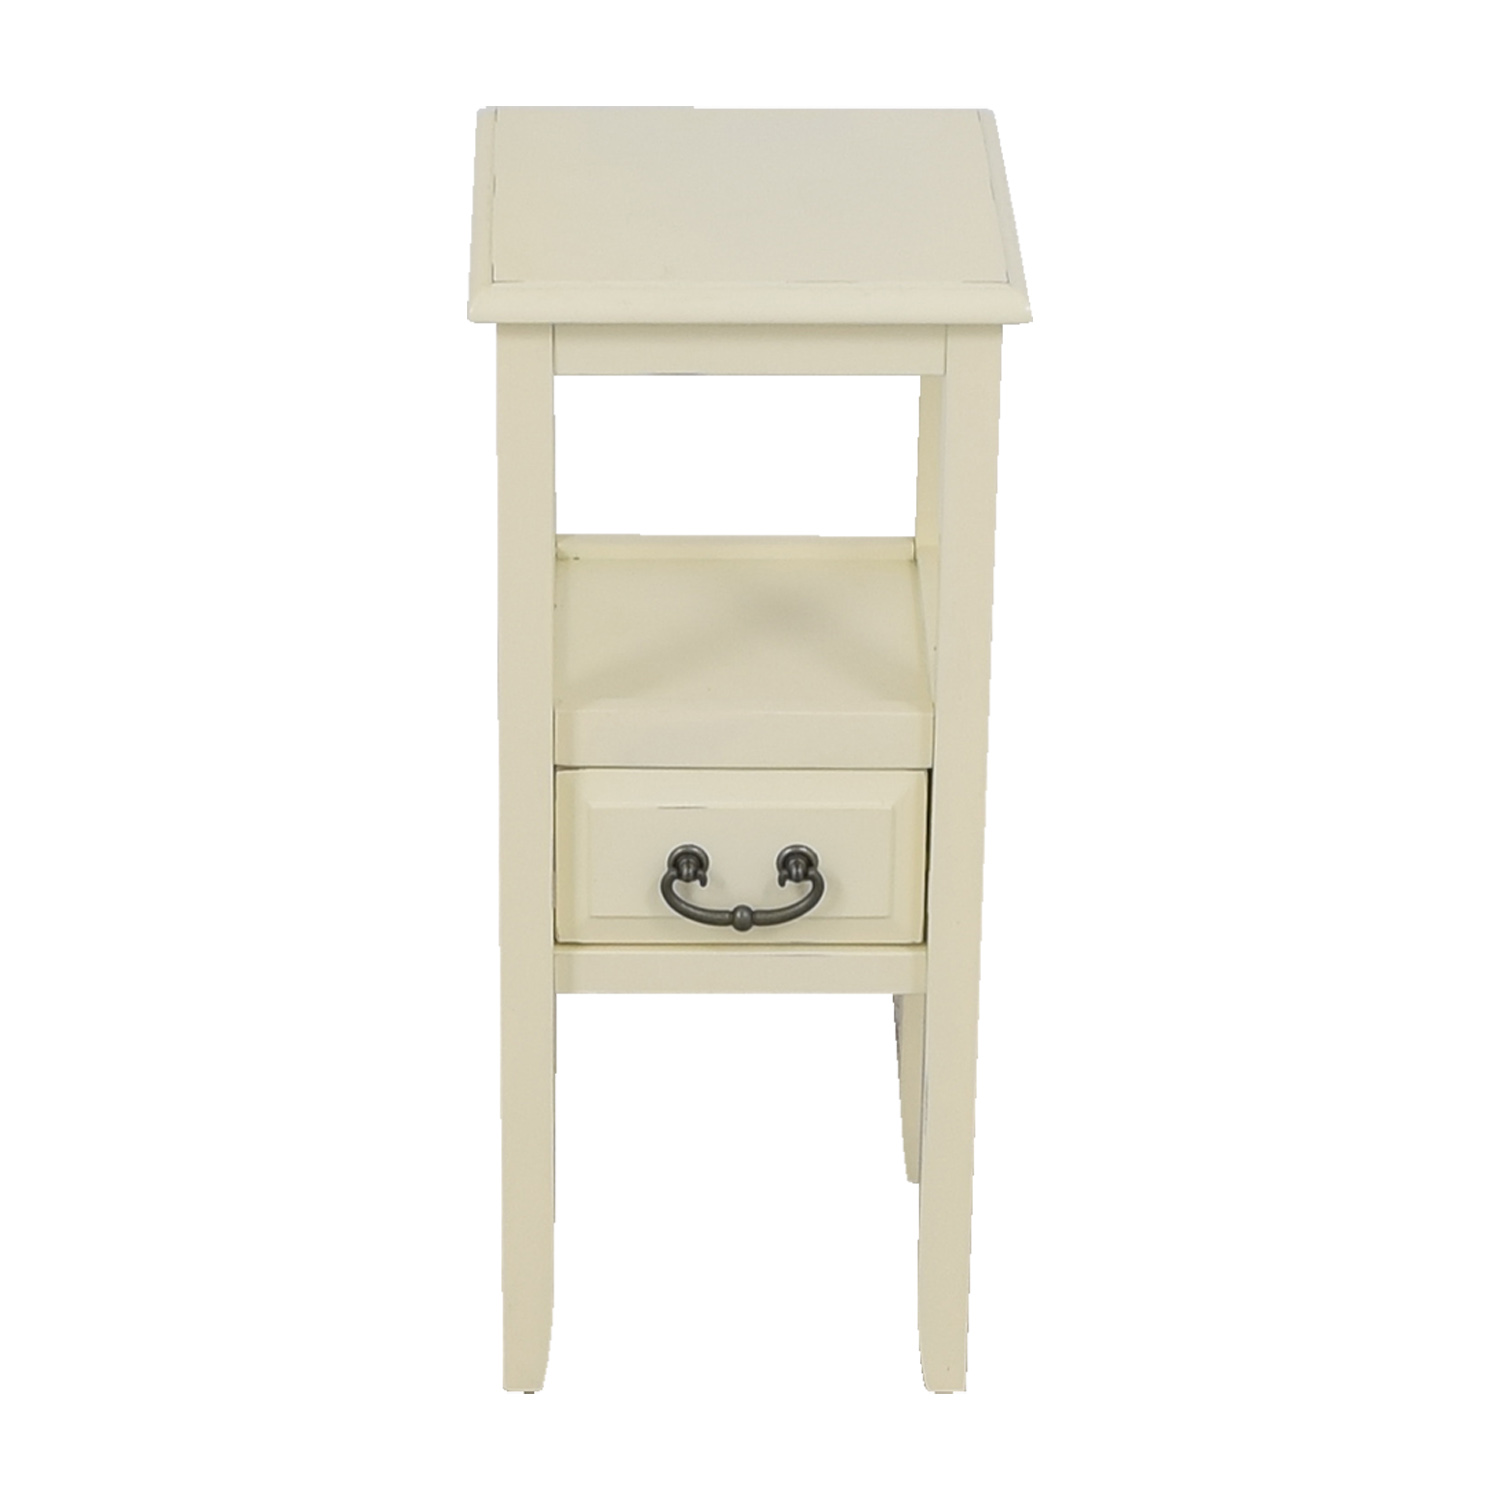 Pier 1 Imports Pier 1 Imports Off White Side Table price